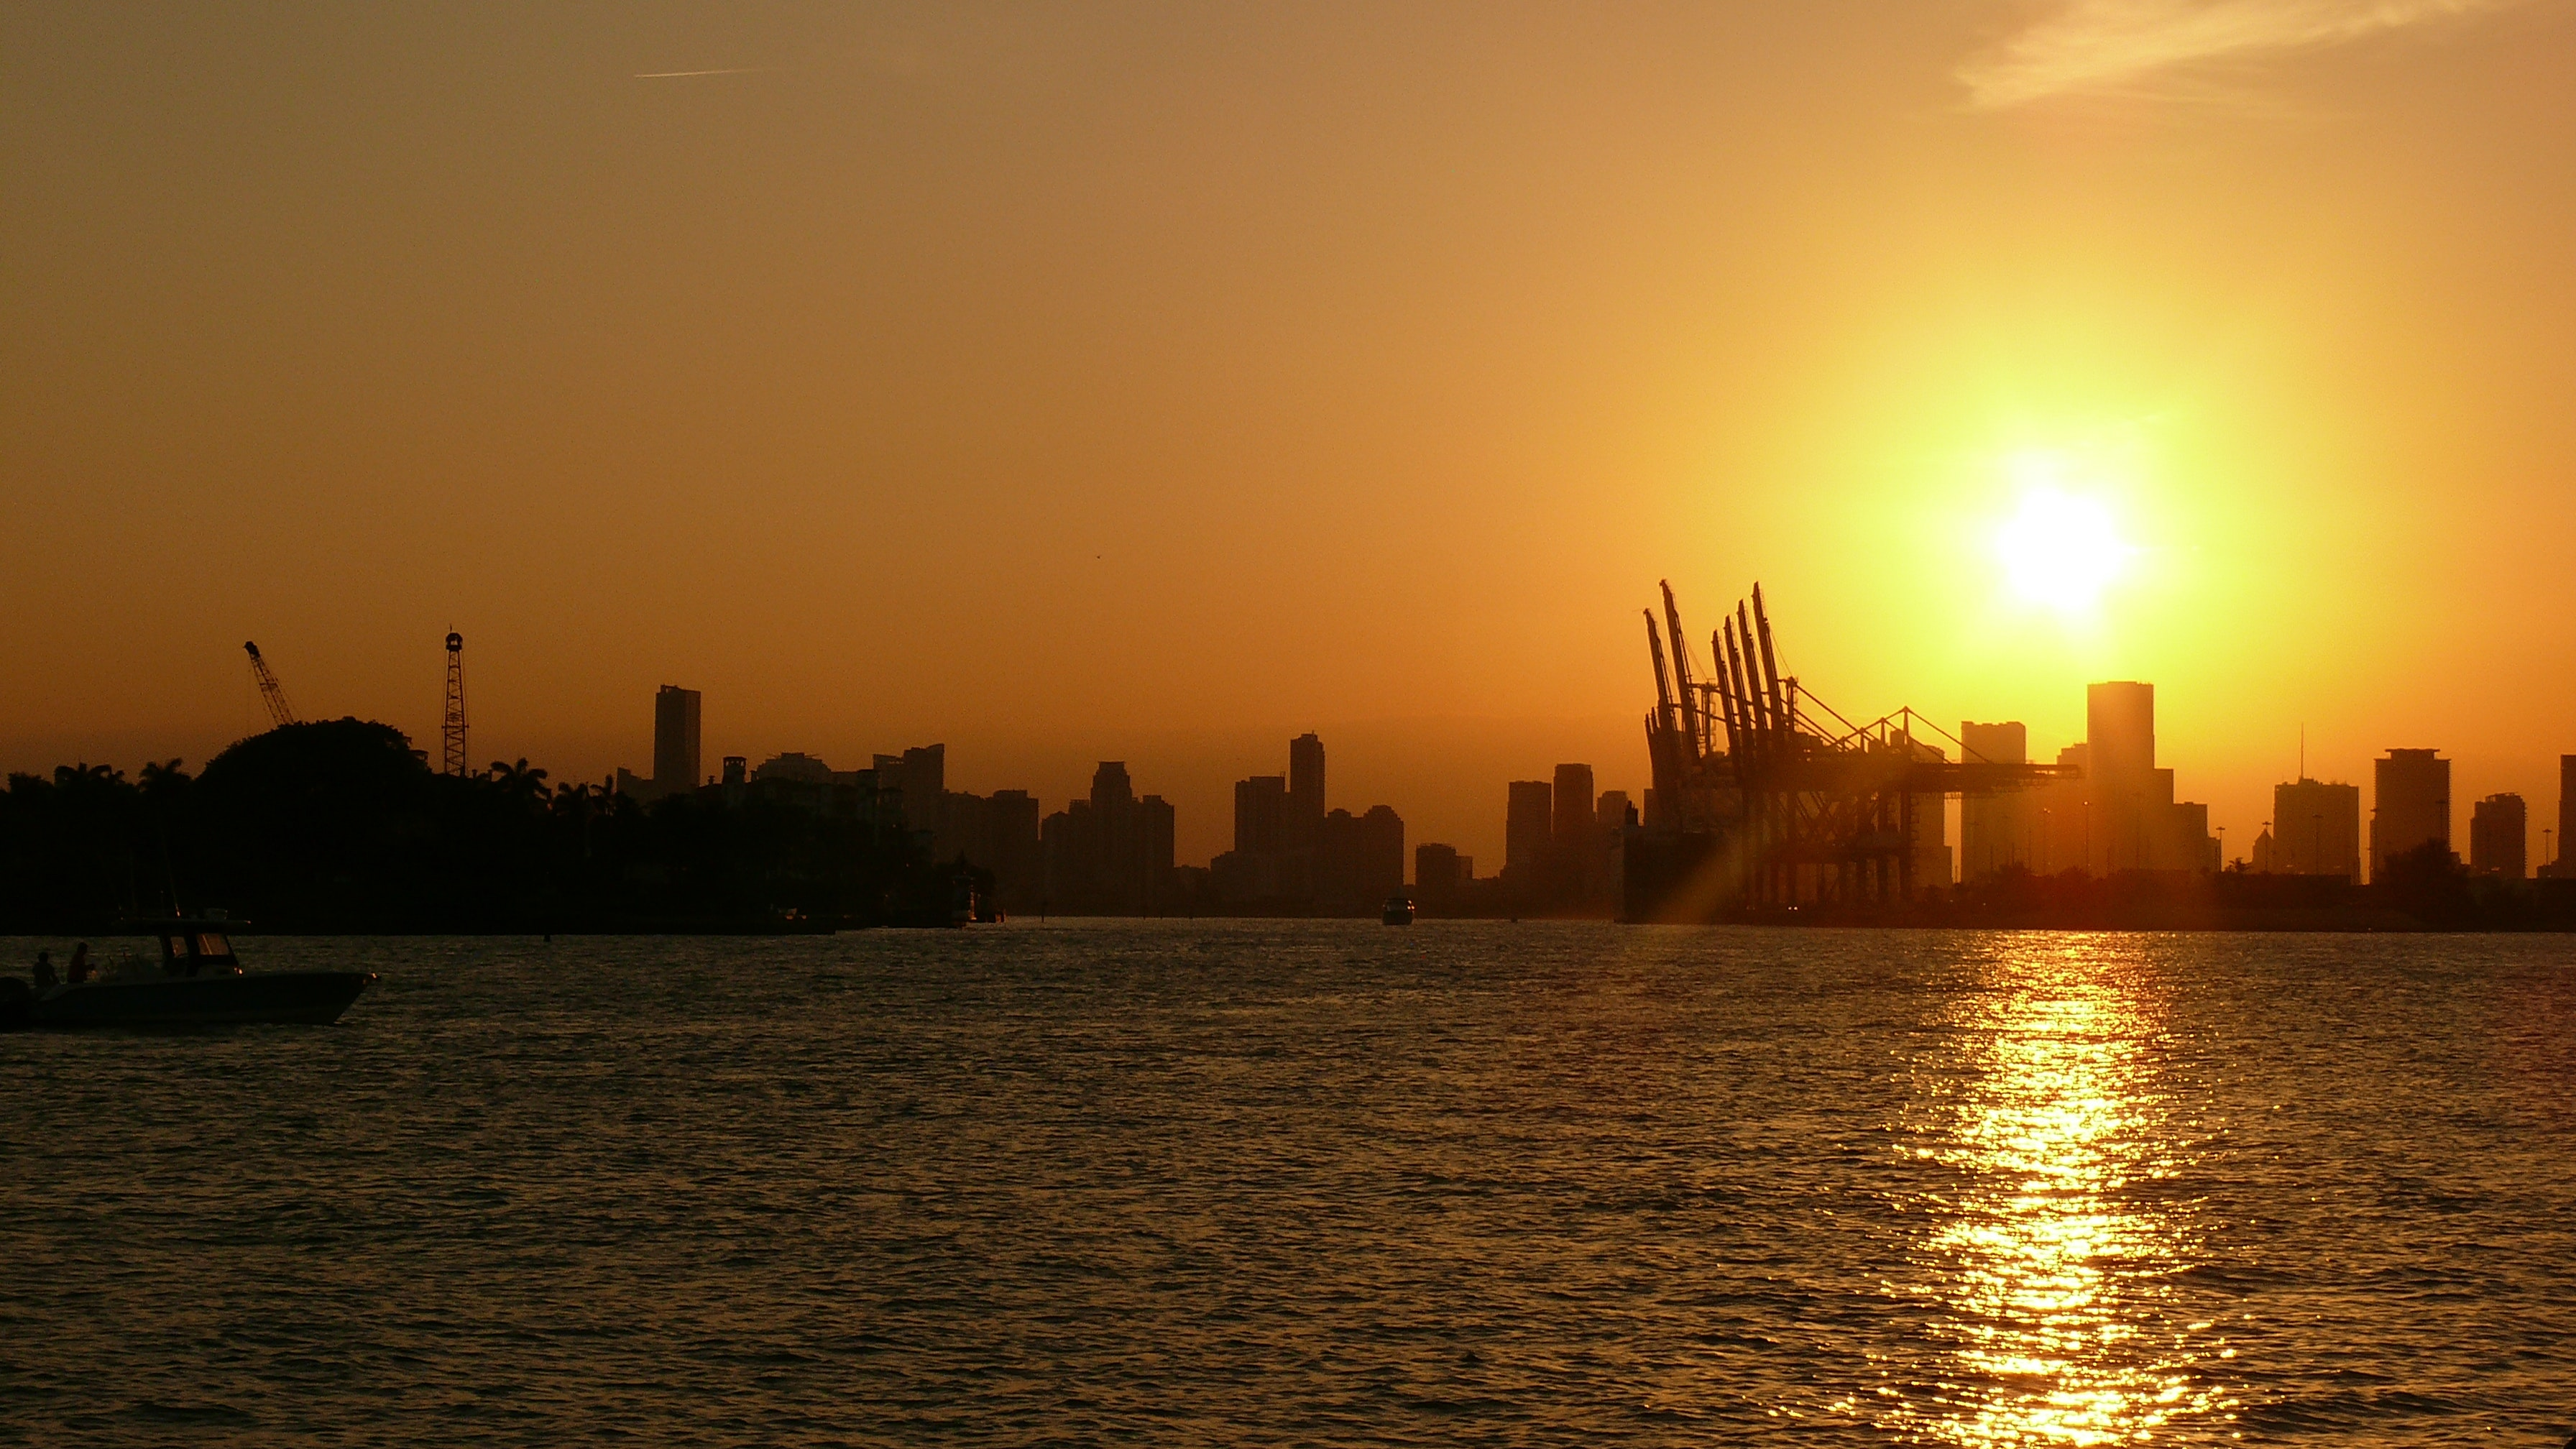 Silhouette of Buildings Near Body of Water Under Golden Hour, Architecture, Pier, Watercrafts, Water, HQ Photo